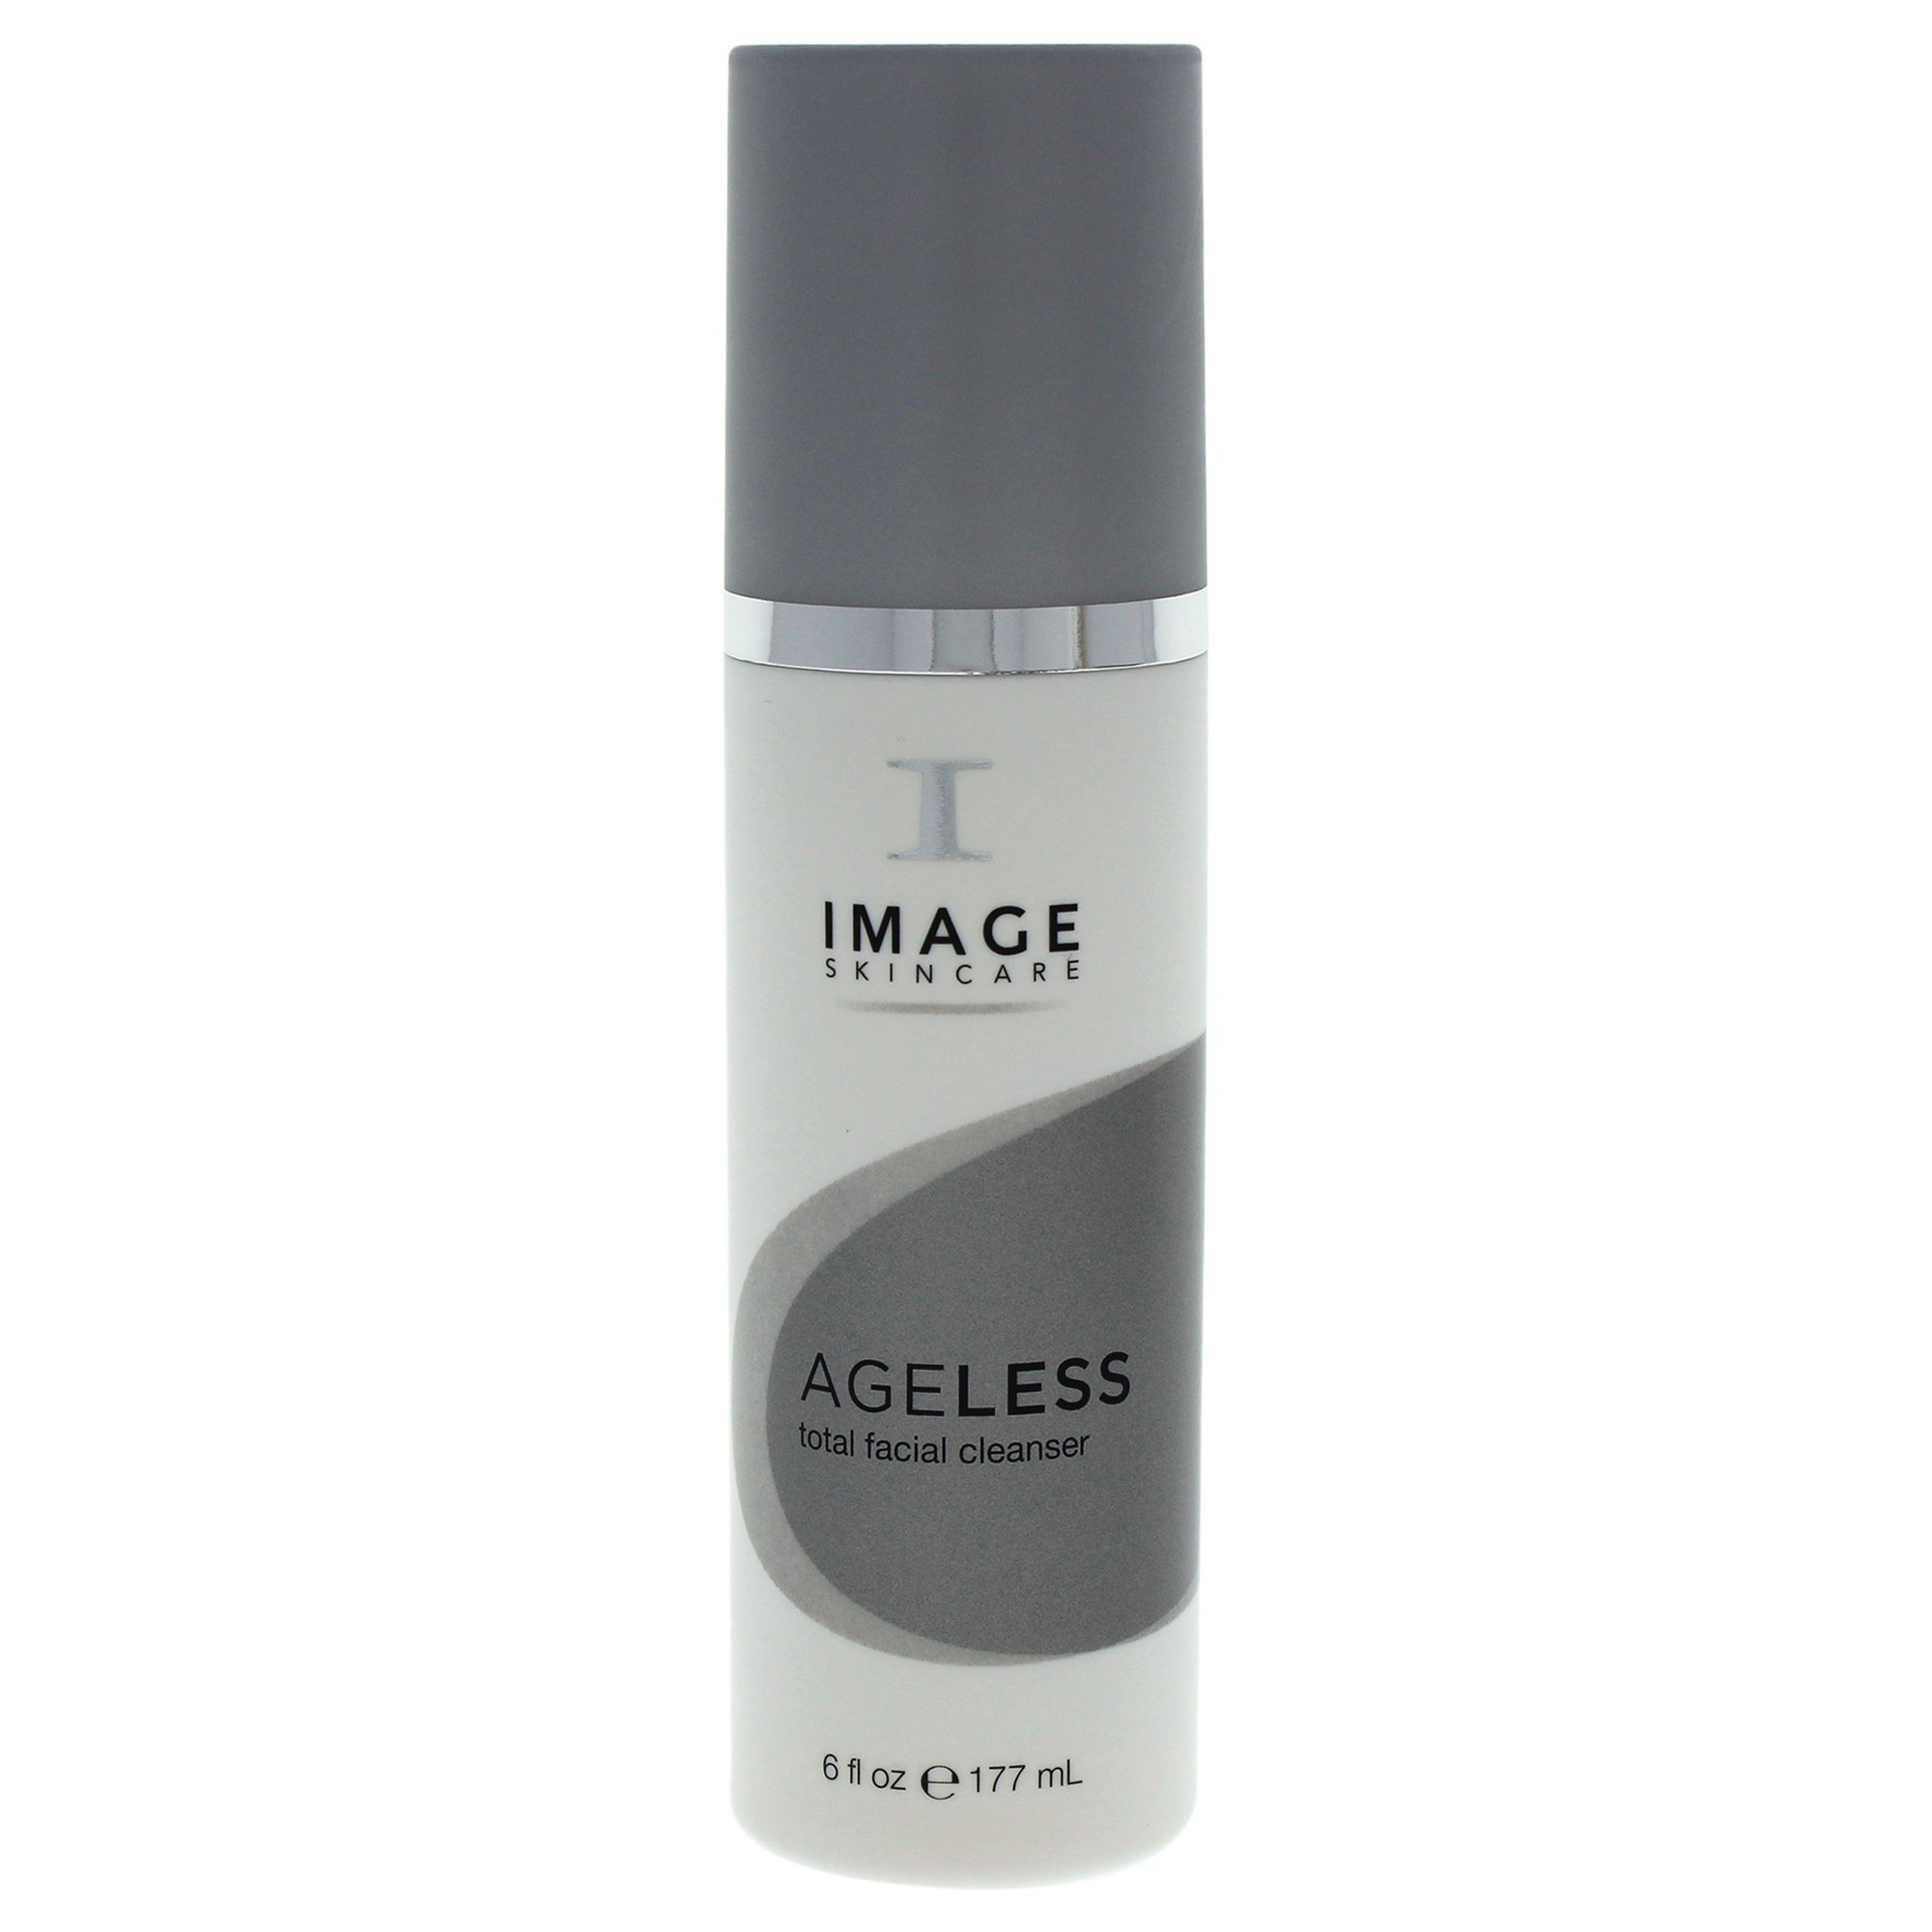 Image Skincare Ageless Total Facial Cleanser, 6 Ounce by Image Skincare